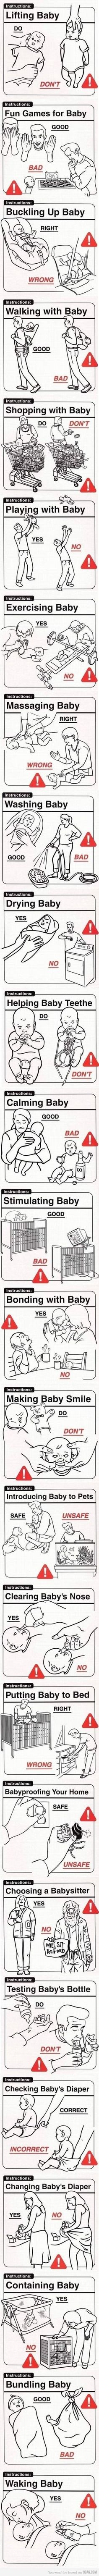 BY FAR the best parenting advice EVER! said cassidy from lakeland...too soon sorry but after this i think im ready to raise a child! :)